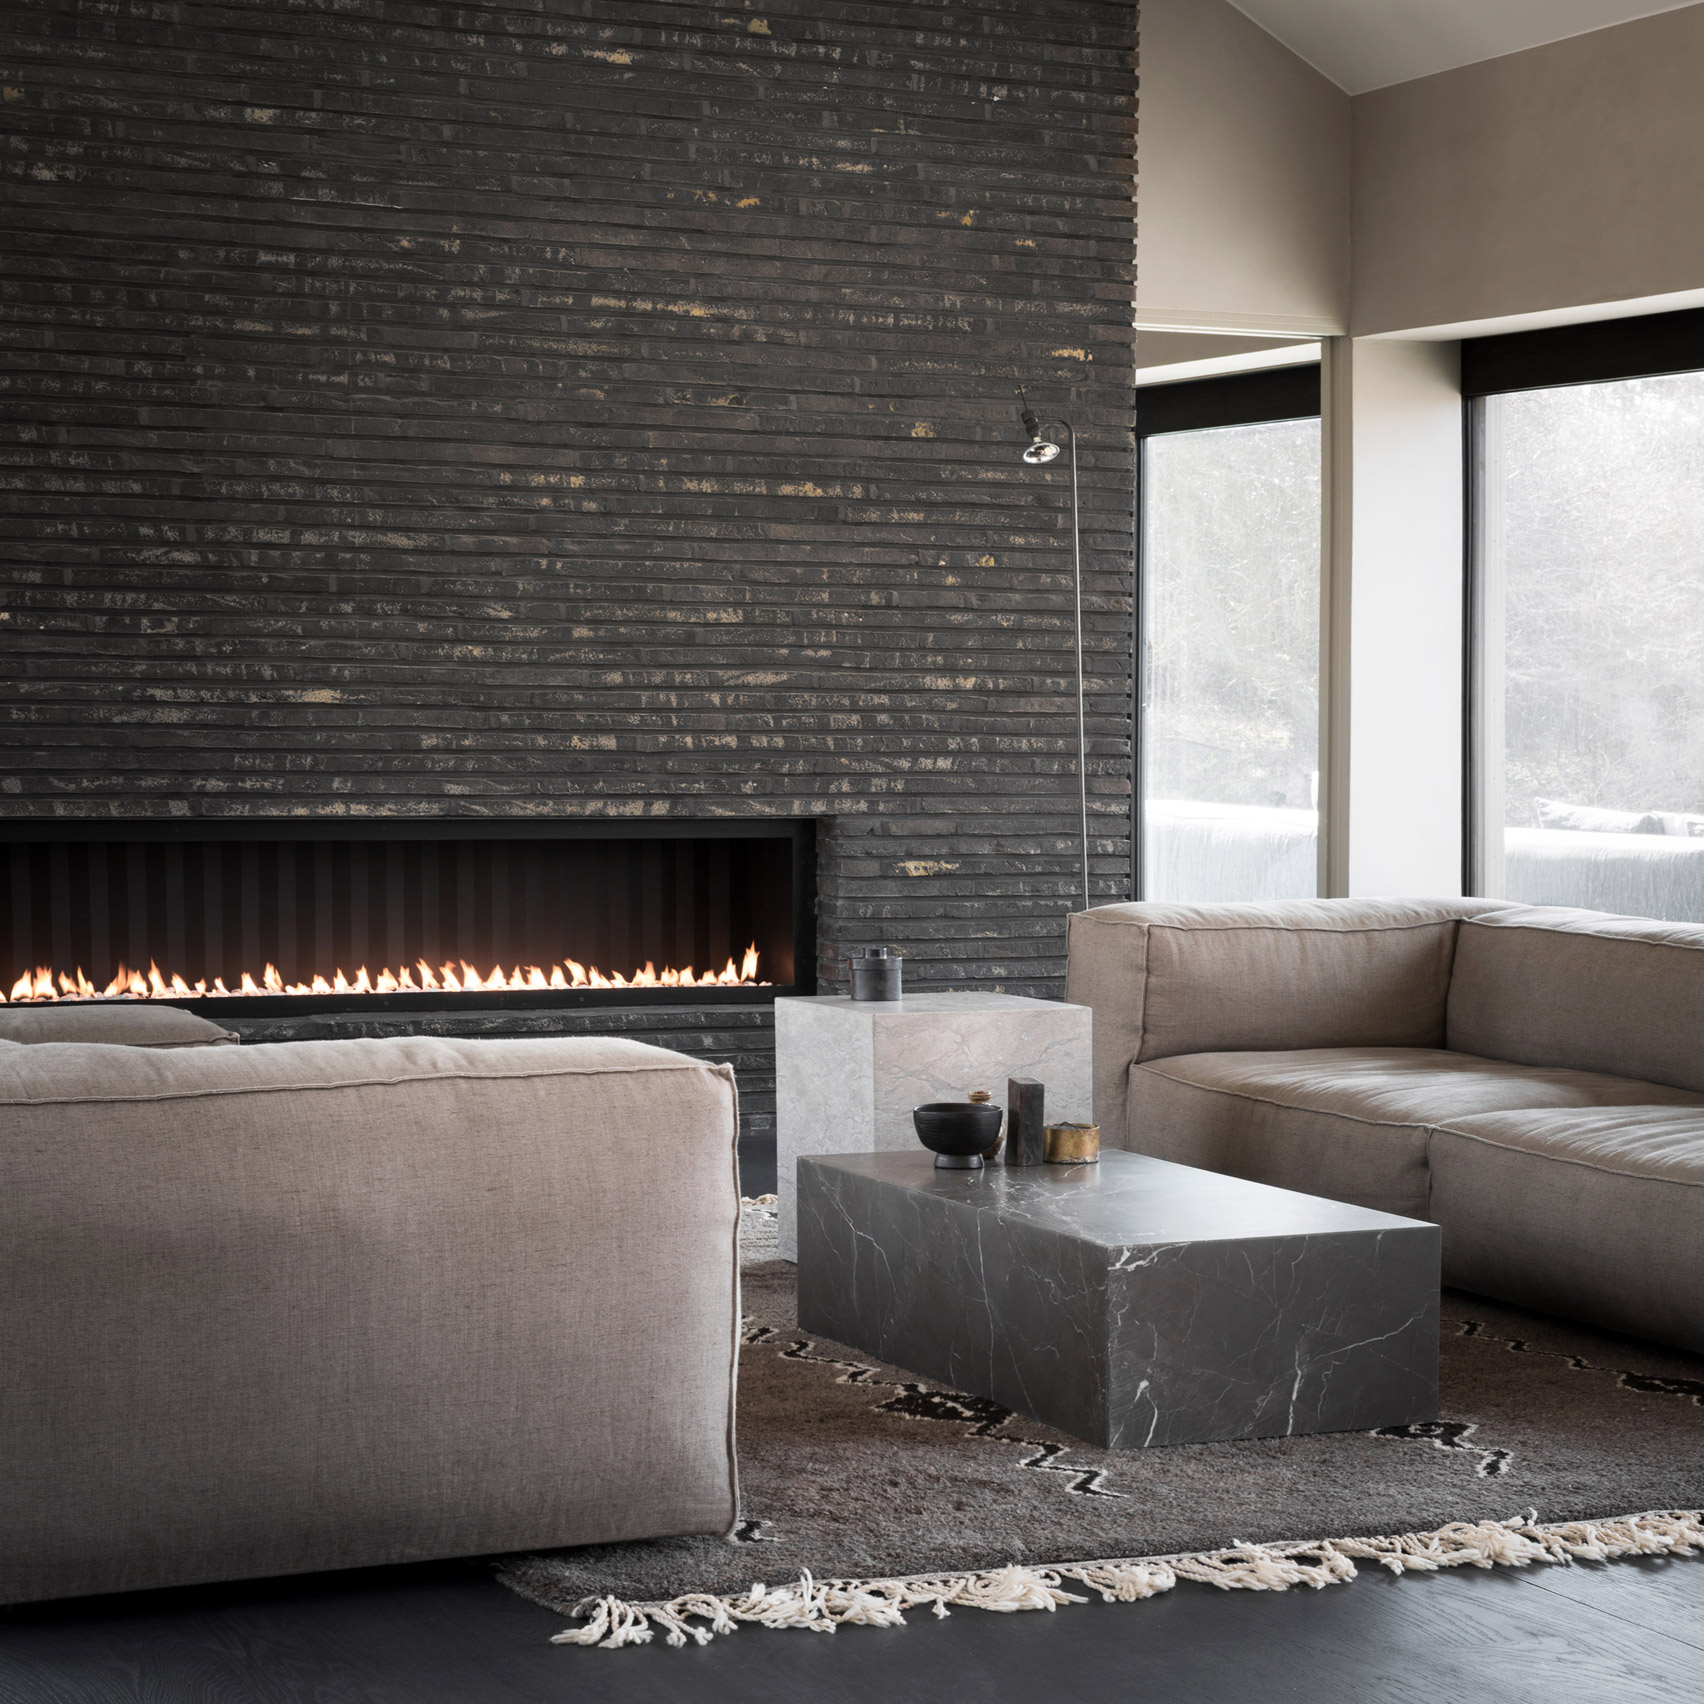 Living room with long fireplace